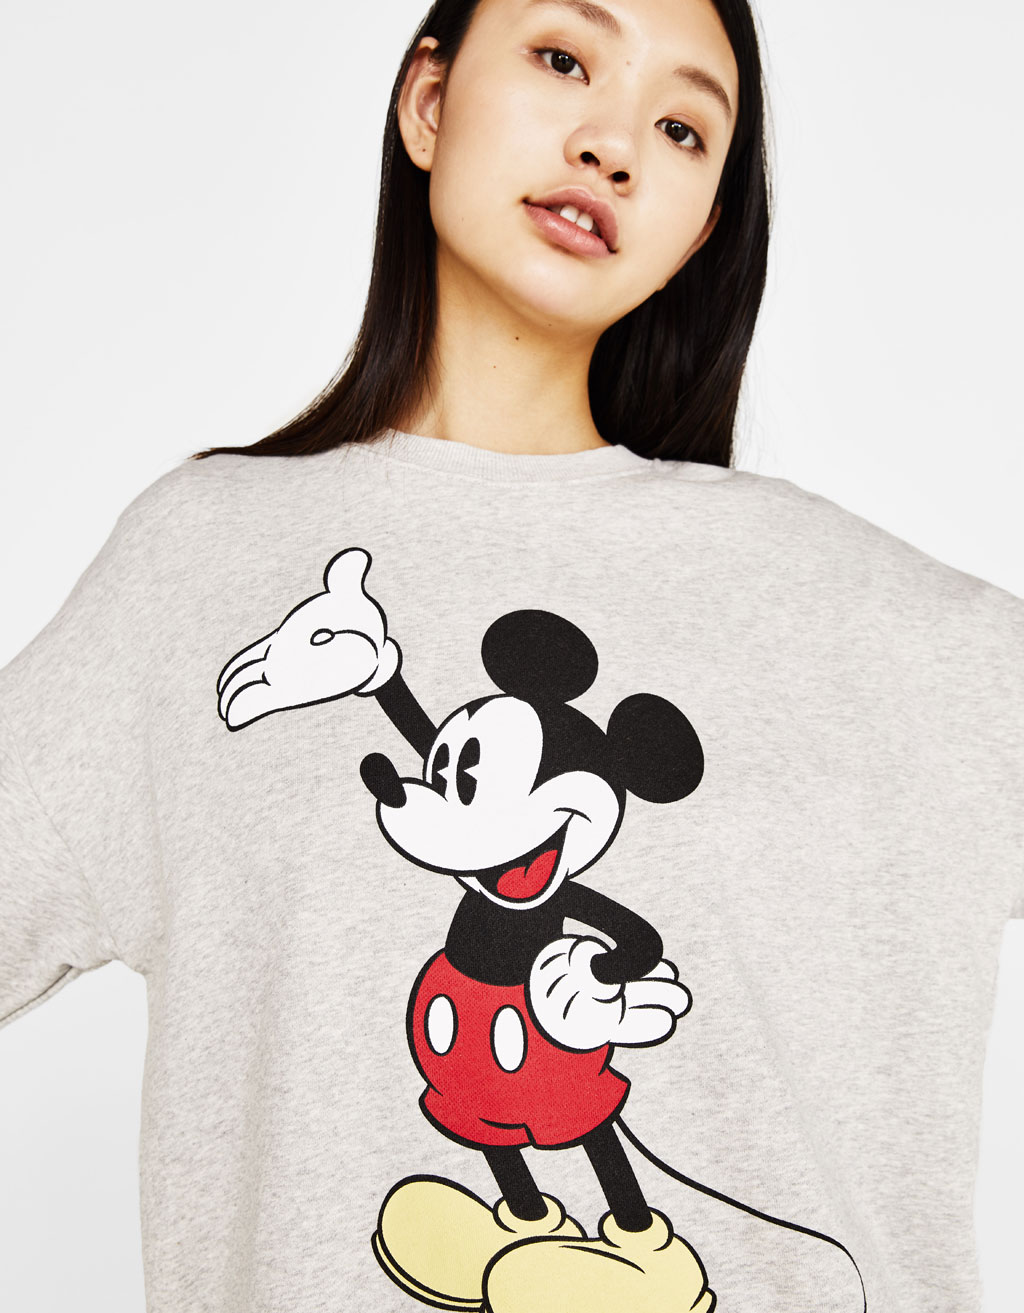 Mickey/Minnie Mouse sweatshirt